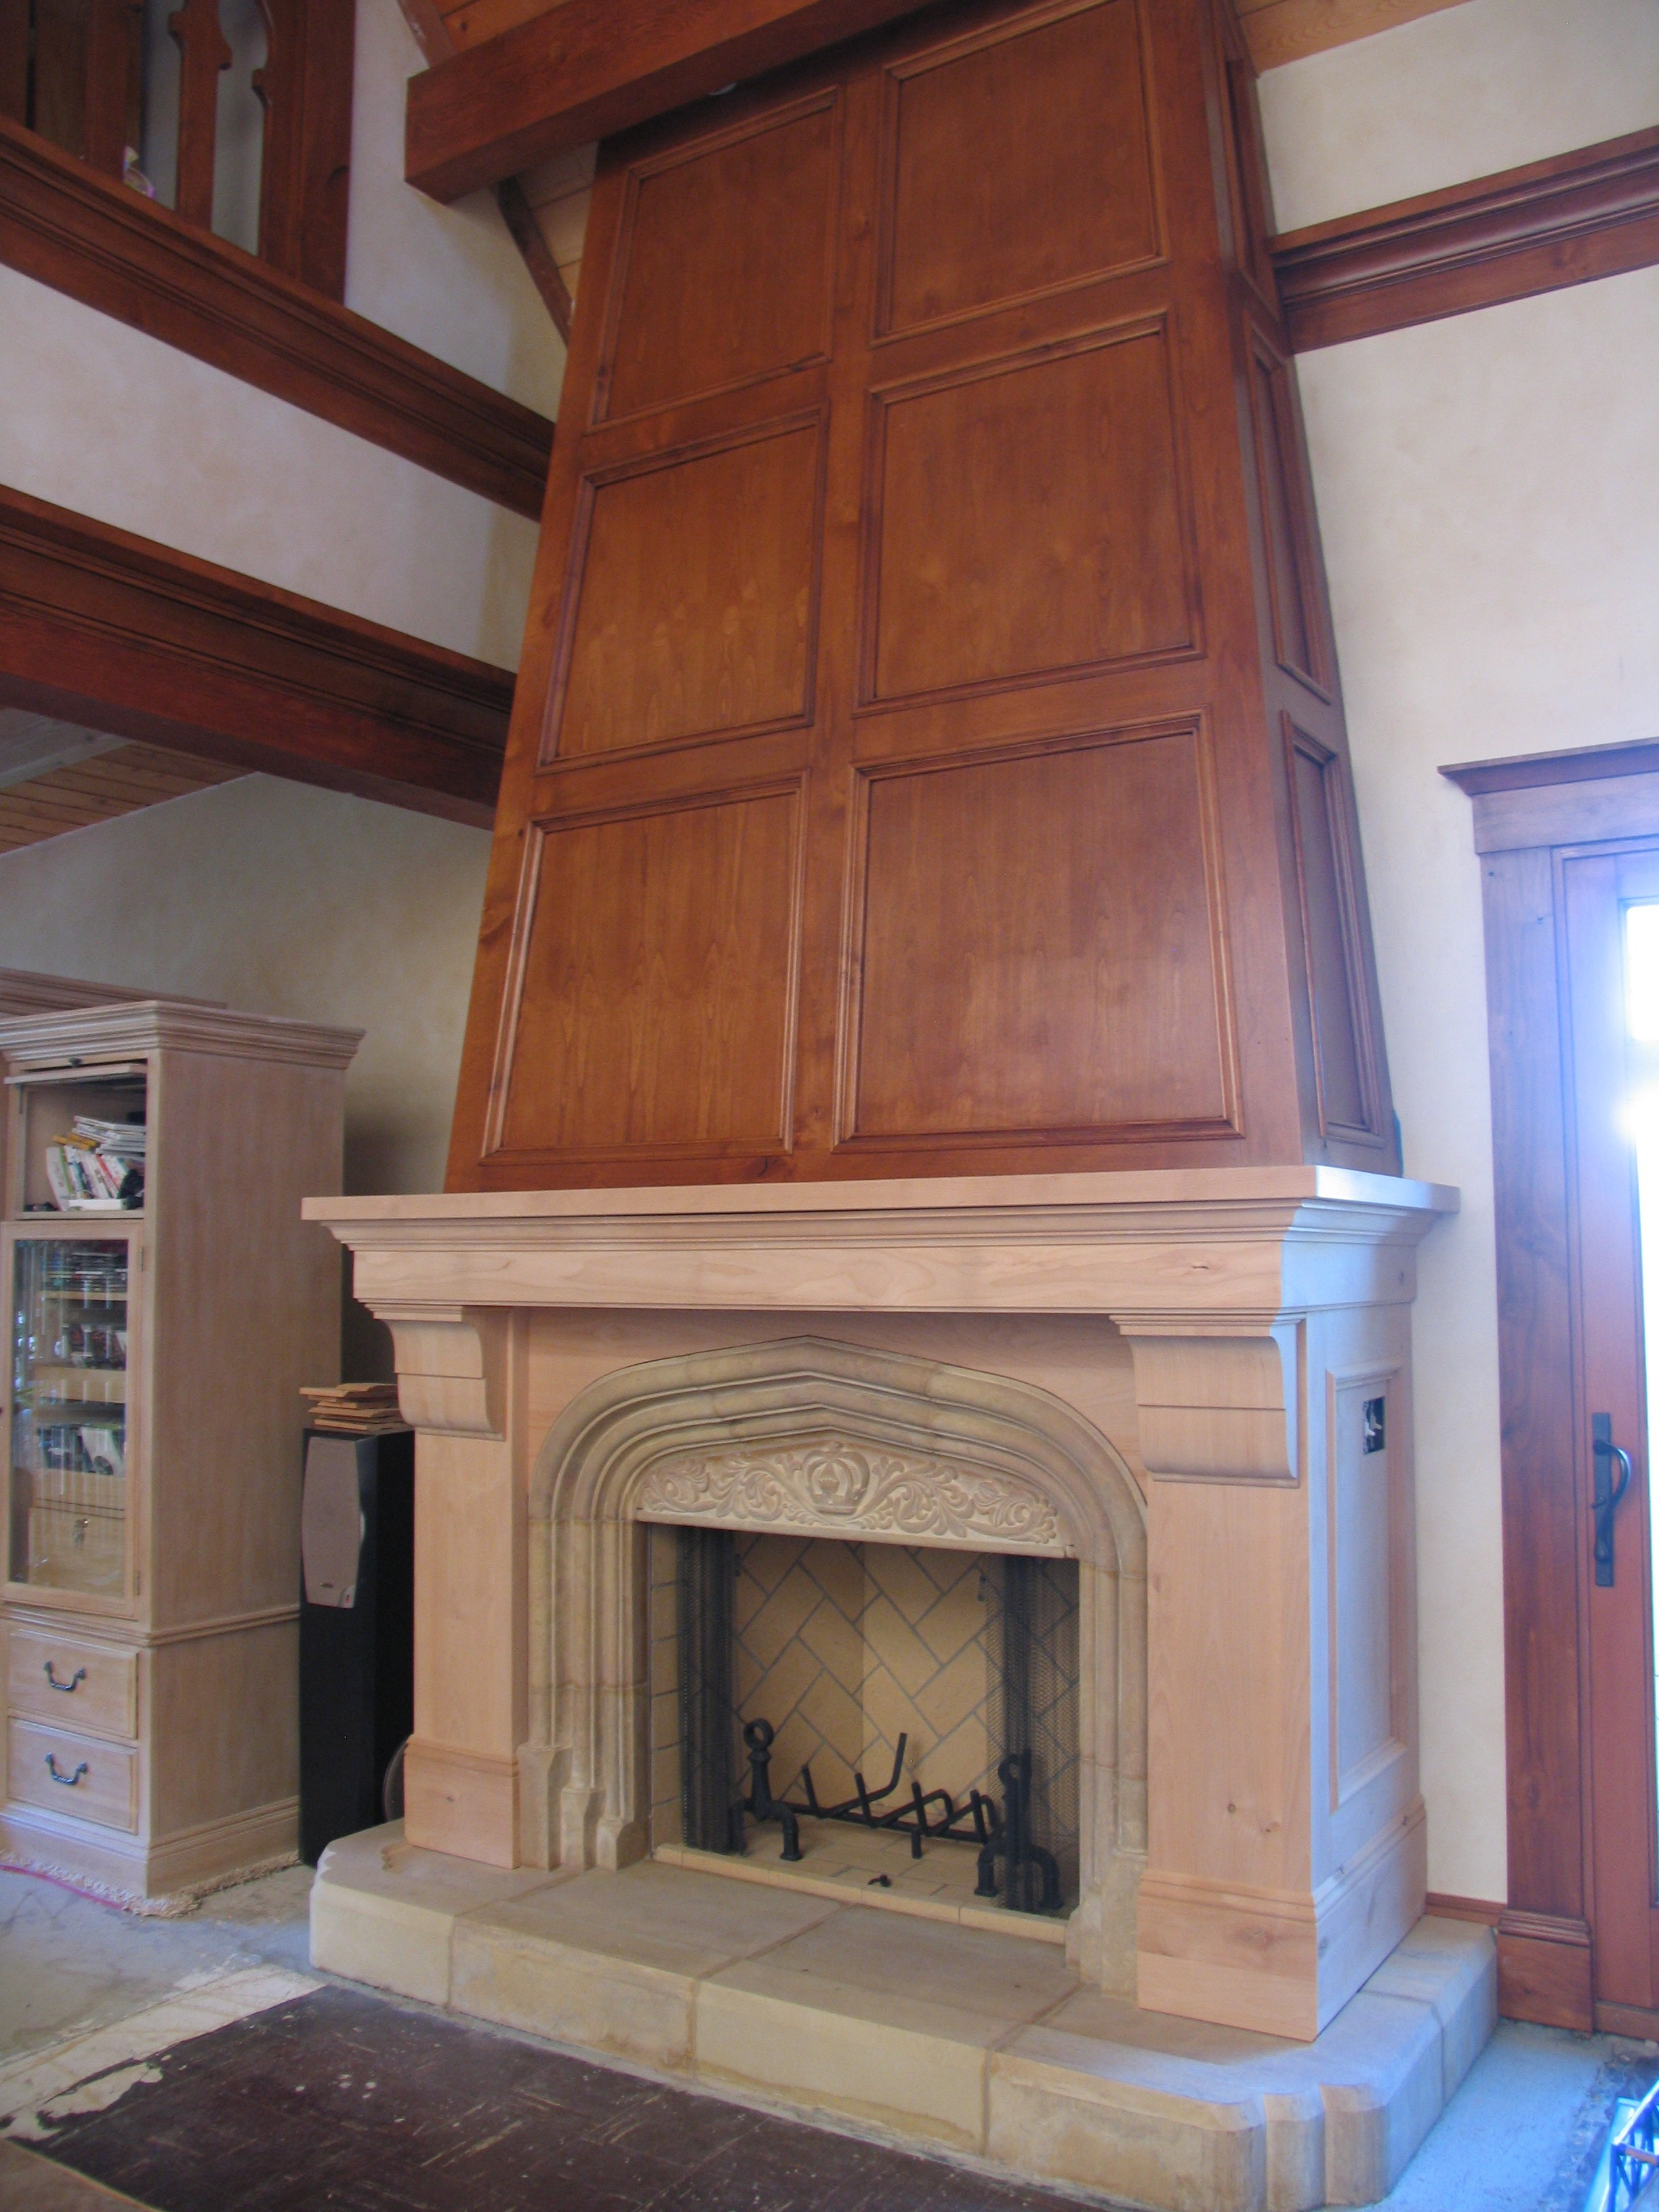 Gothic Revival Fireplace